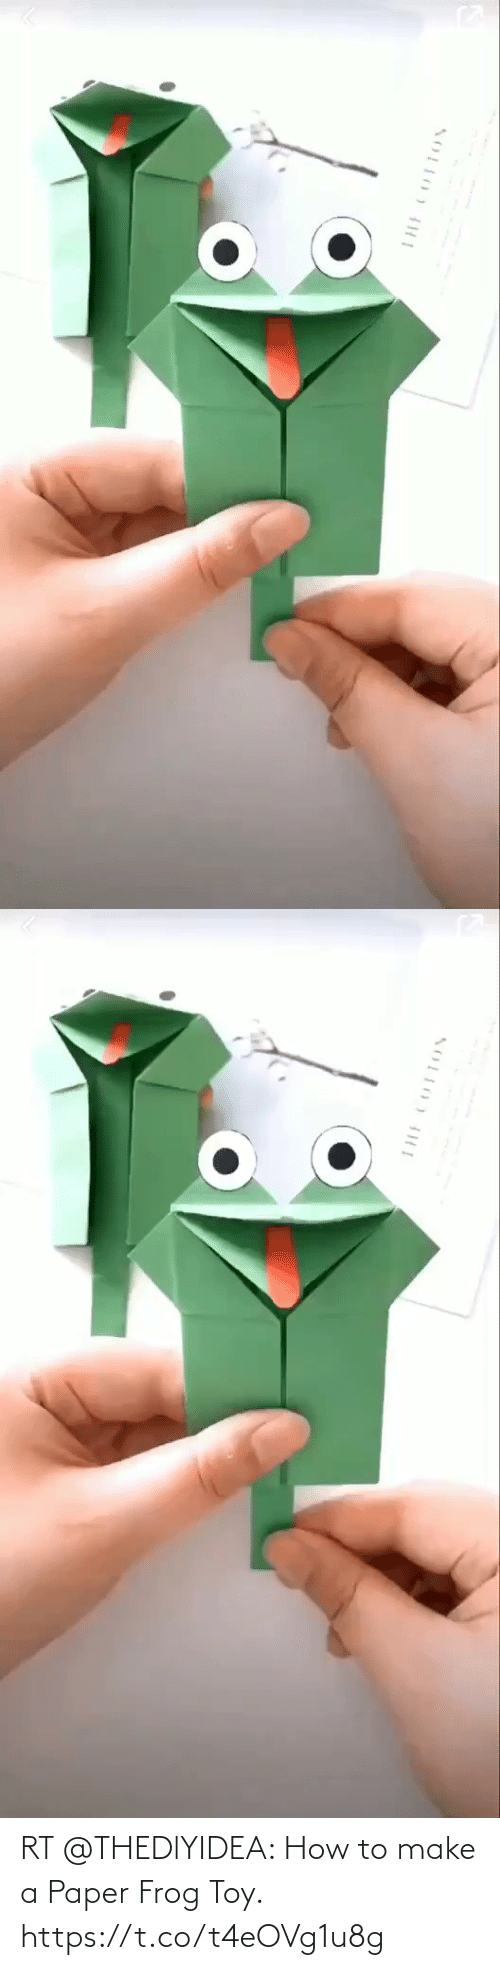 make: RT @THEDlYIDEA: How to make a Paper Frog Toy. https://t.co/t4eOVg1u8g